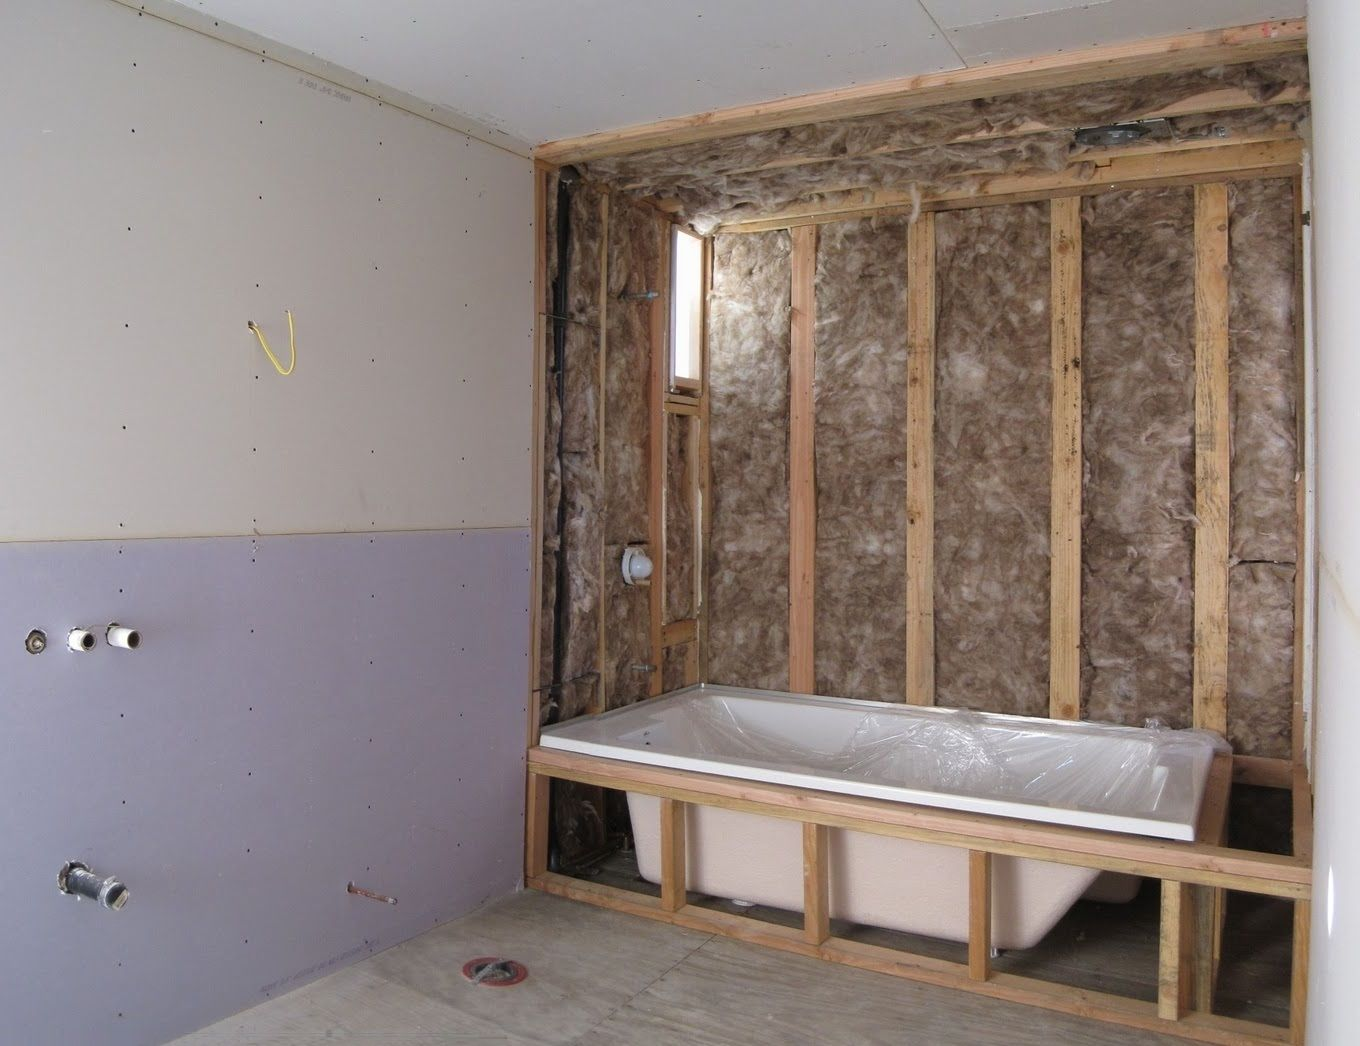 Type of drywall for bathrooms mycoffeepot org - What type of drywall to use in bathroom ...